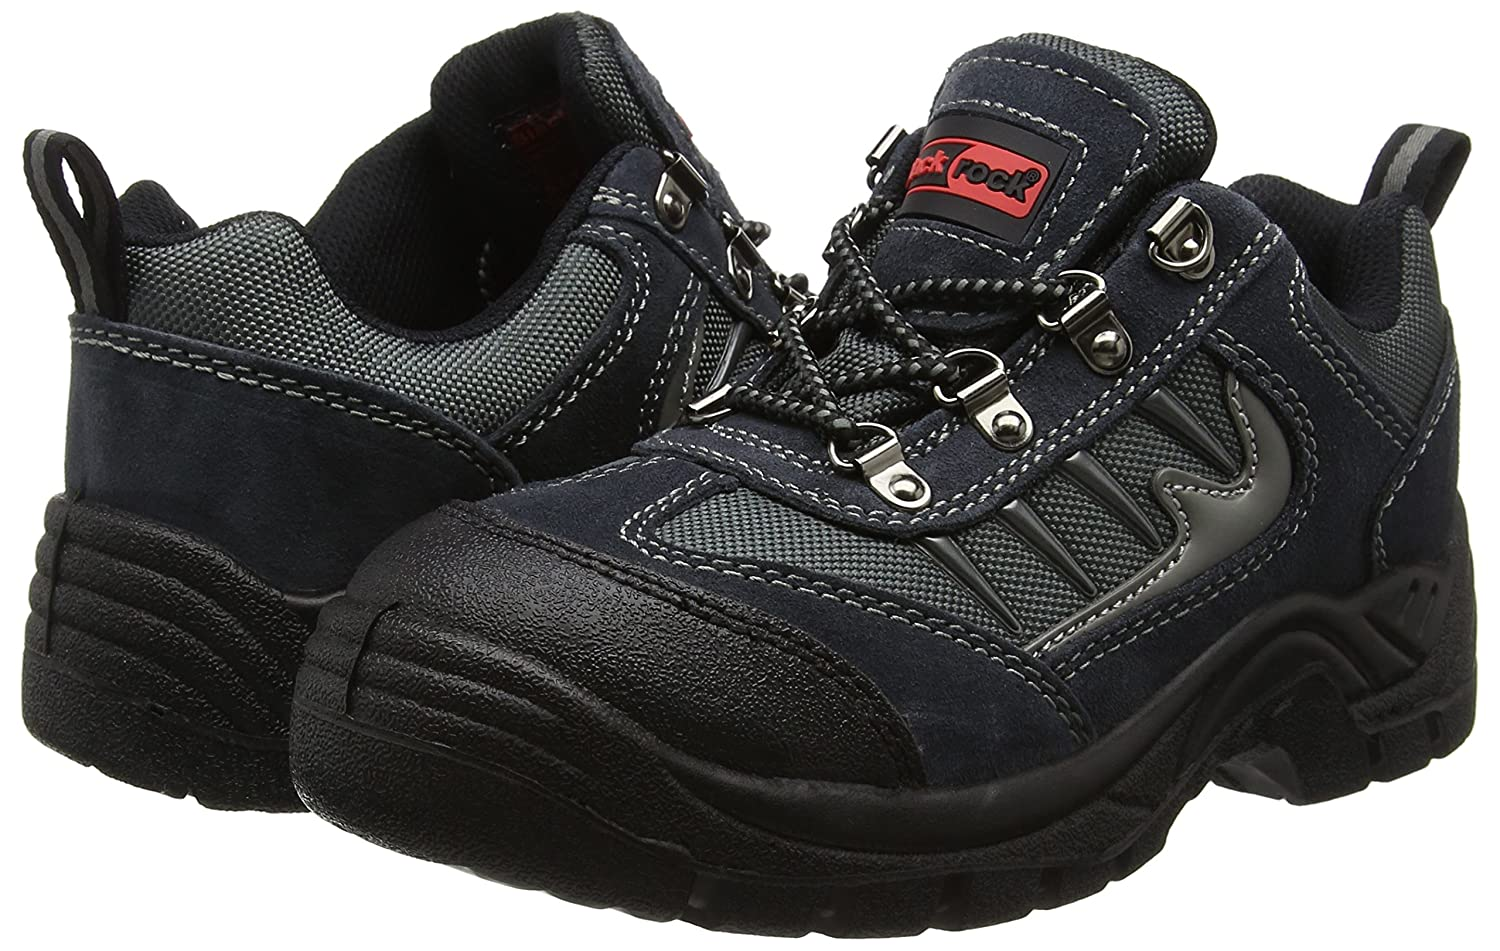 Blackrock Unisex Adults/' Stormchaser Safety Trainers